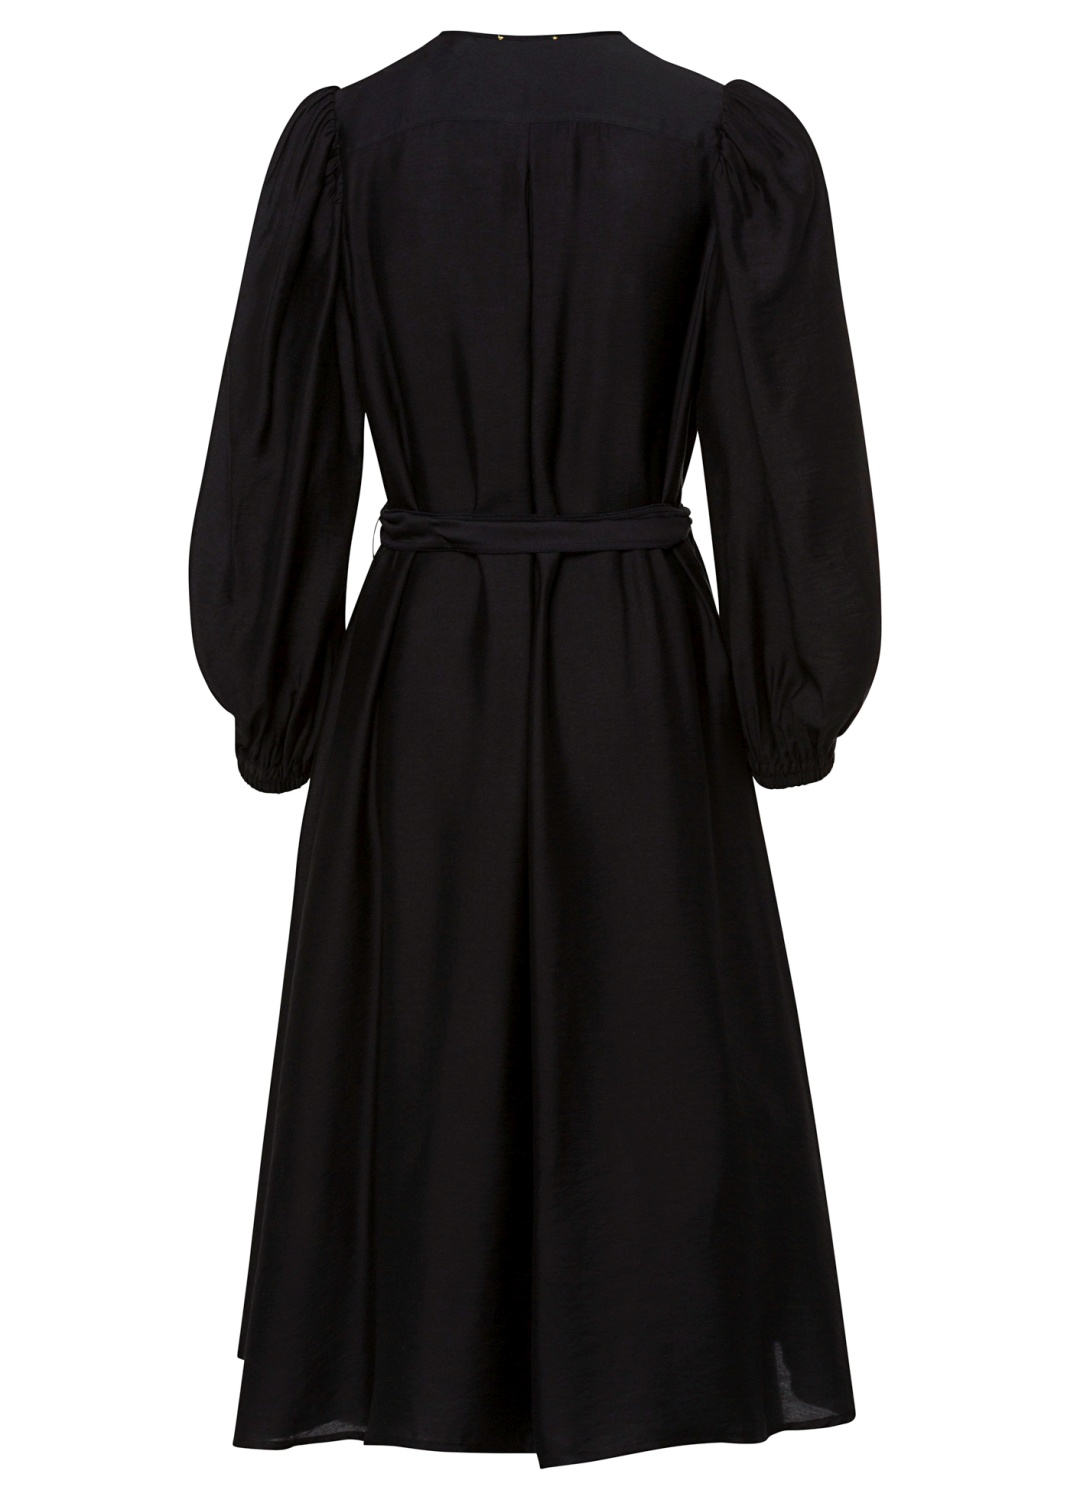 chic twill crossed dress image number 1